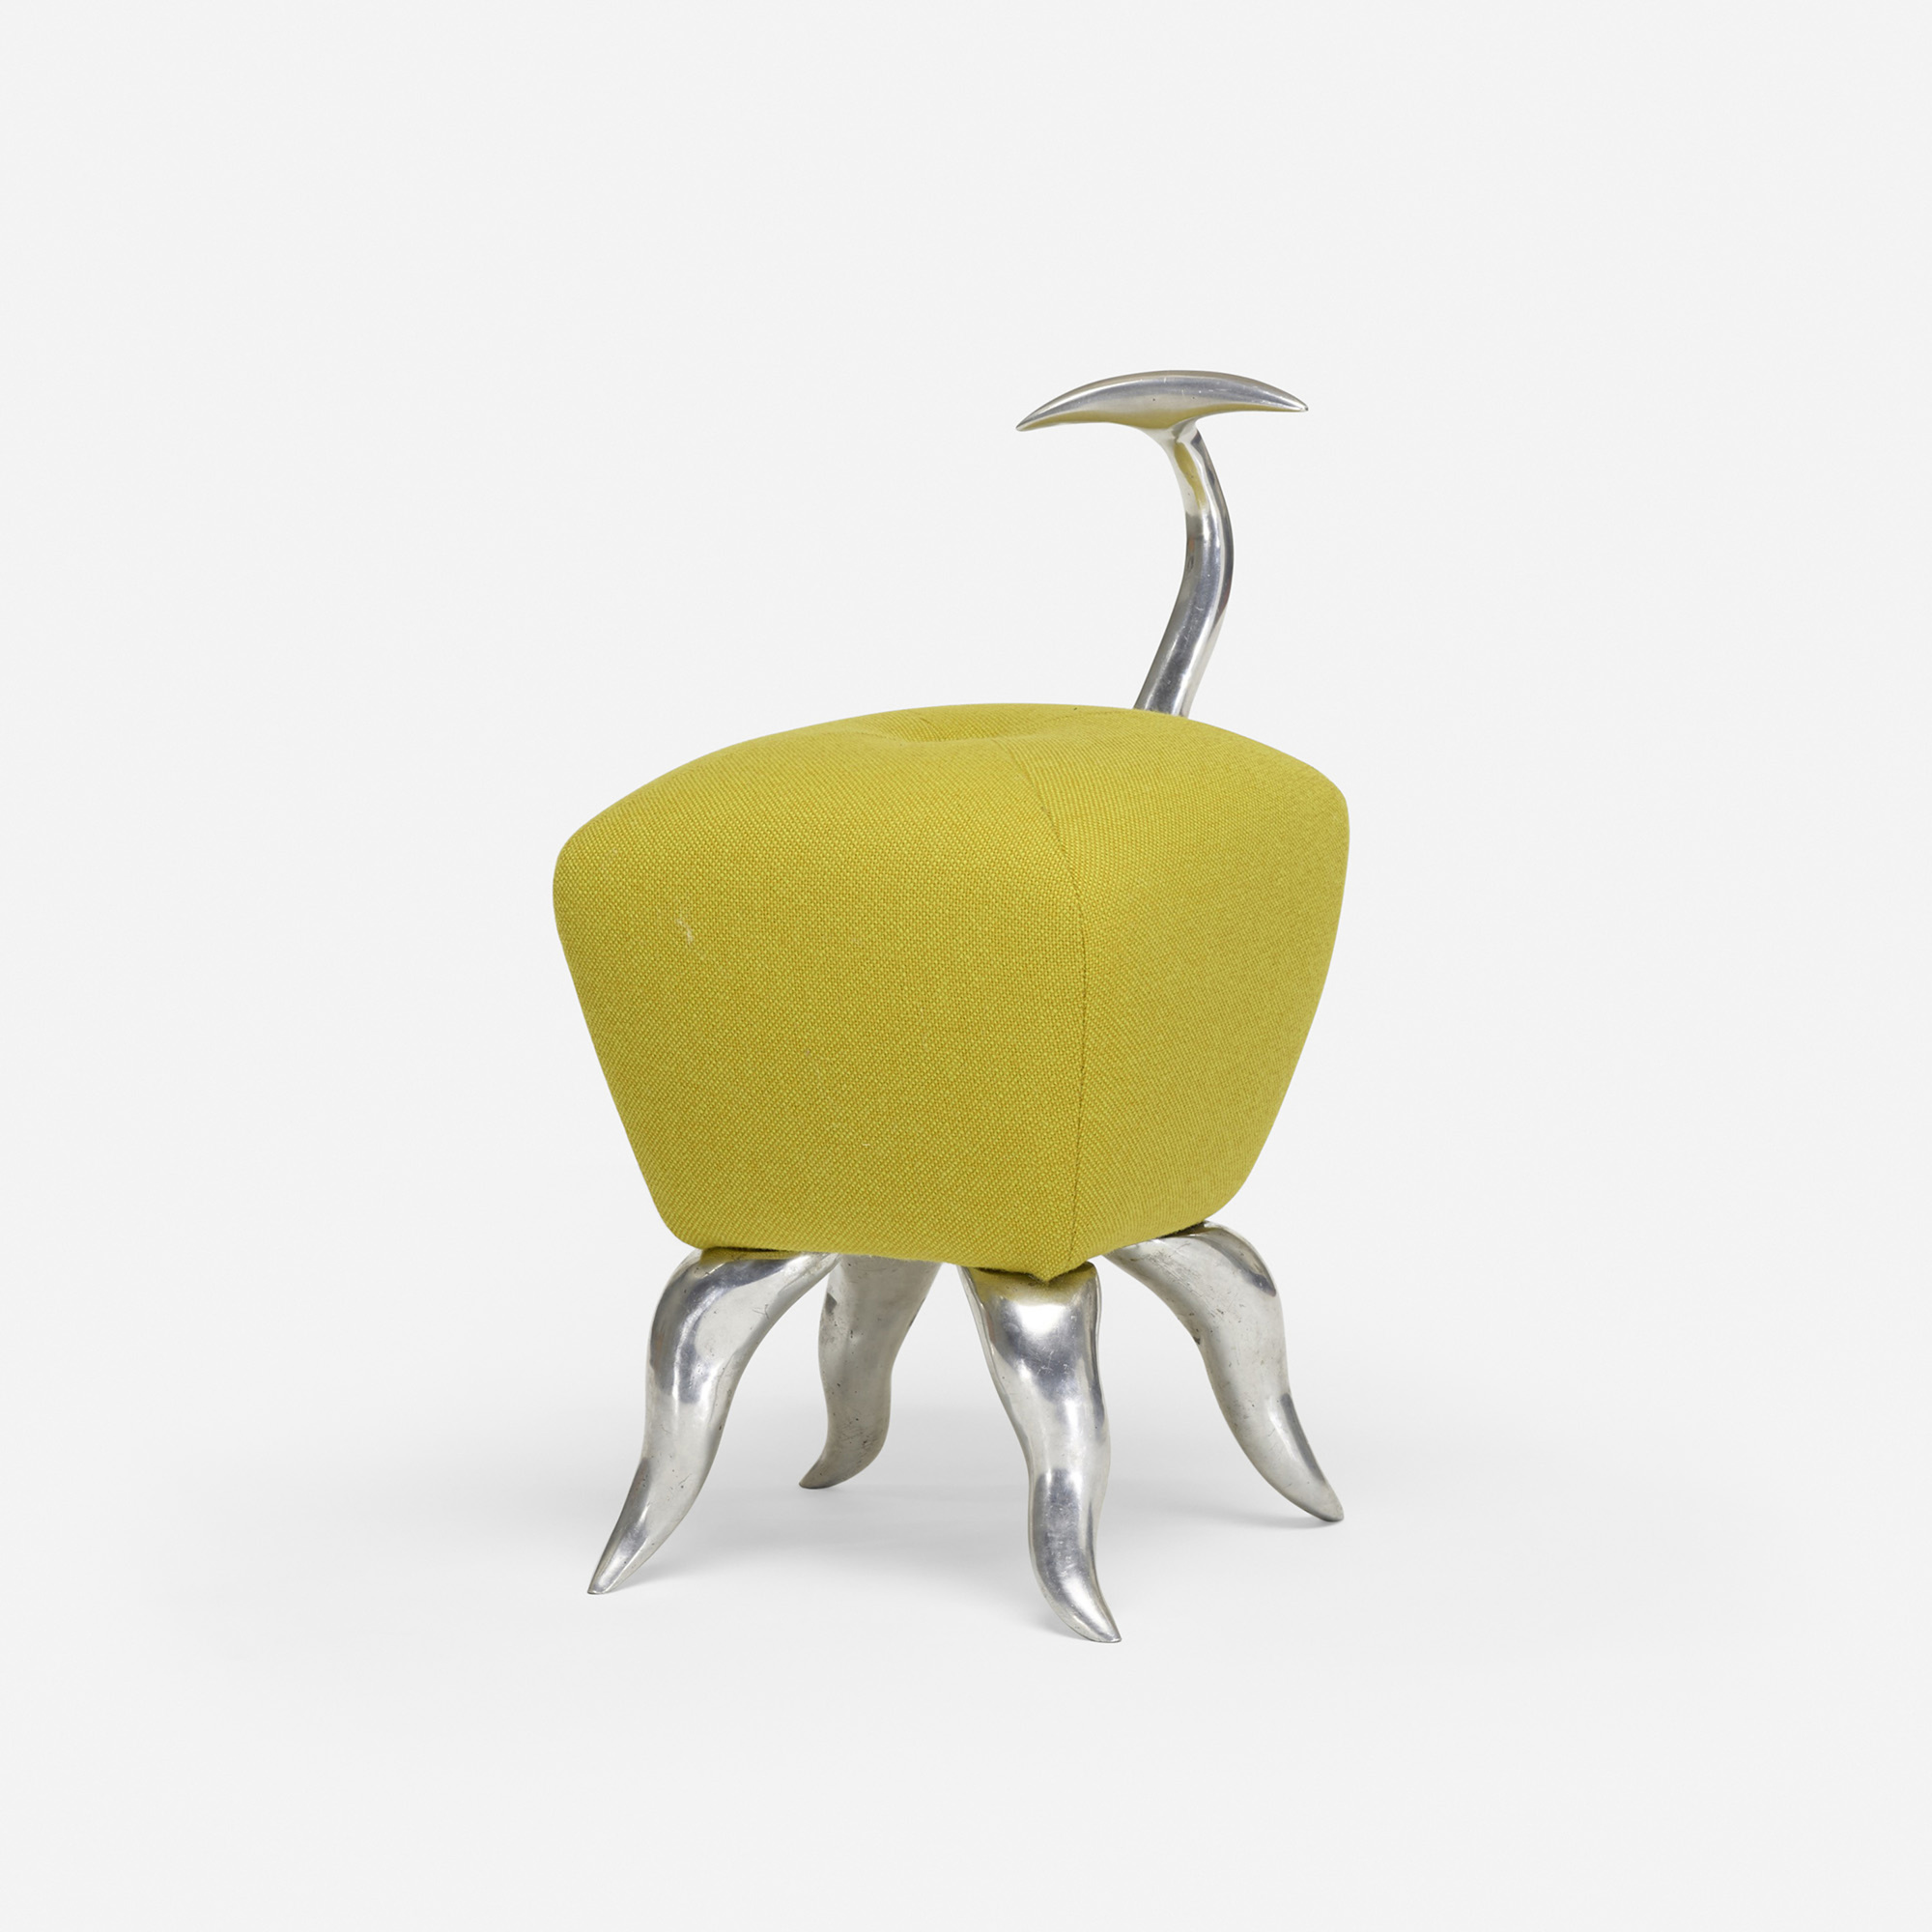 740: In the manner of Philippe Starck / stool (1 of 3)